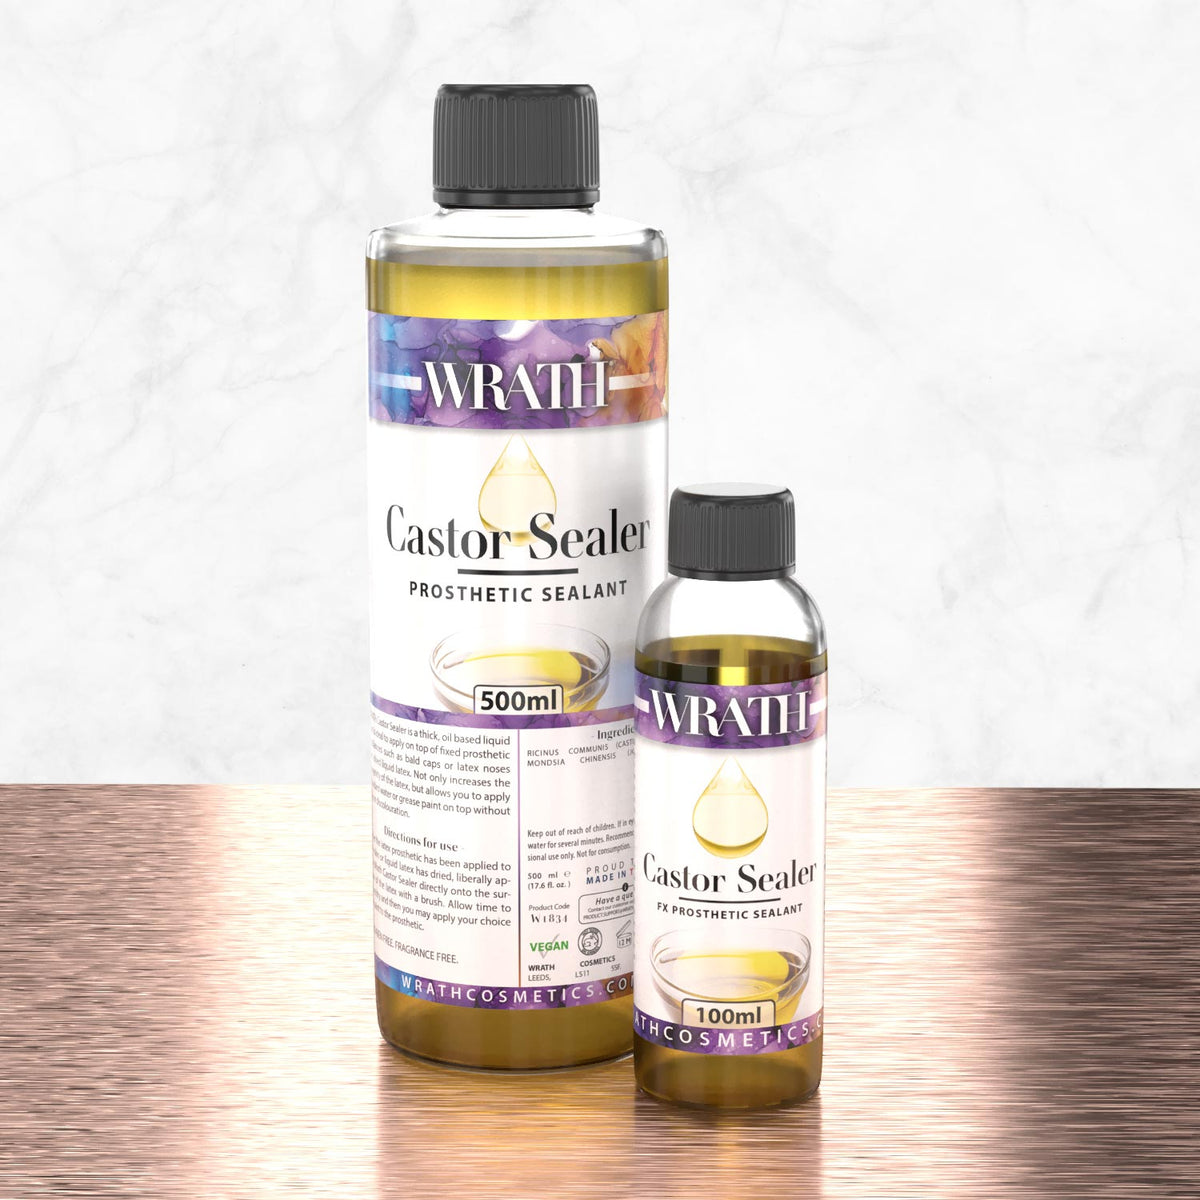 WRATH Castor Sealer Prosthetic Sealant